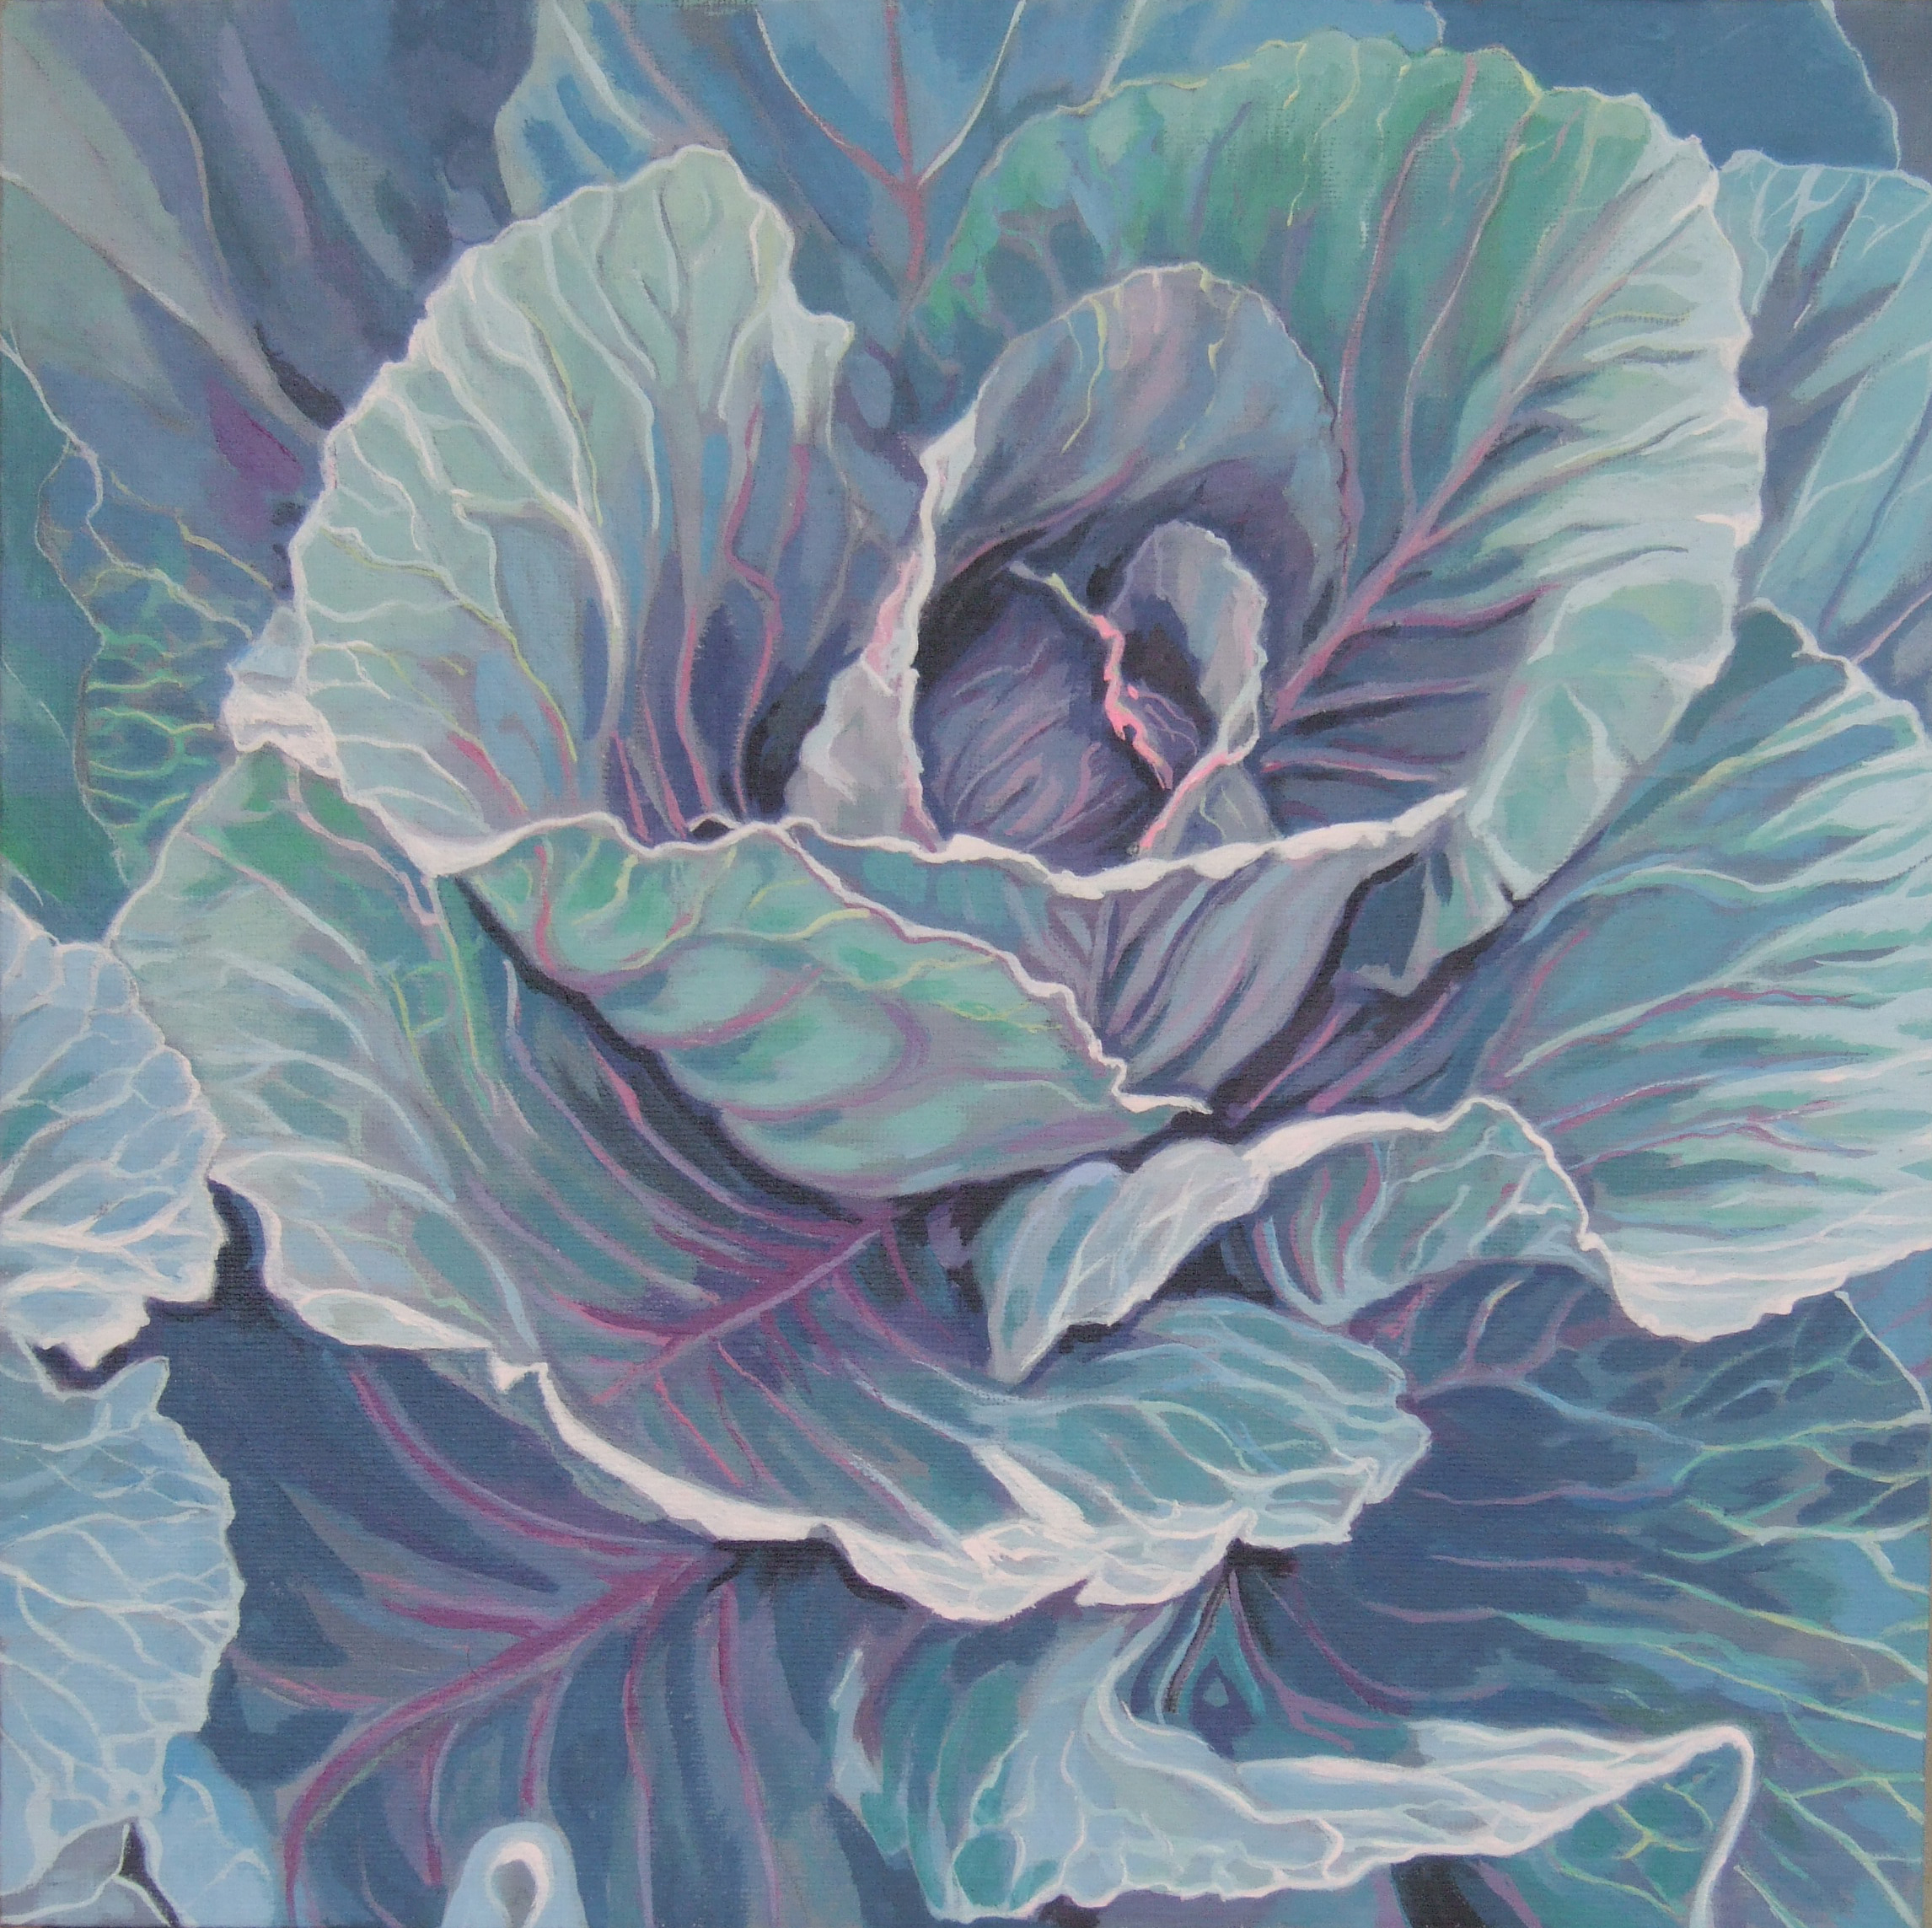 Cabbage 2